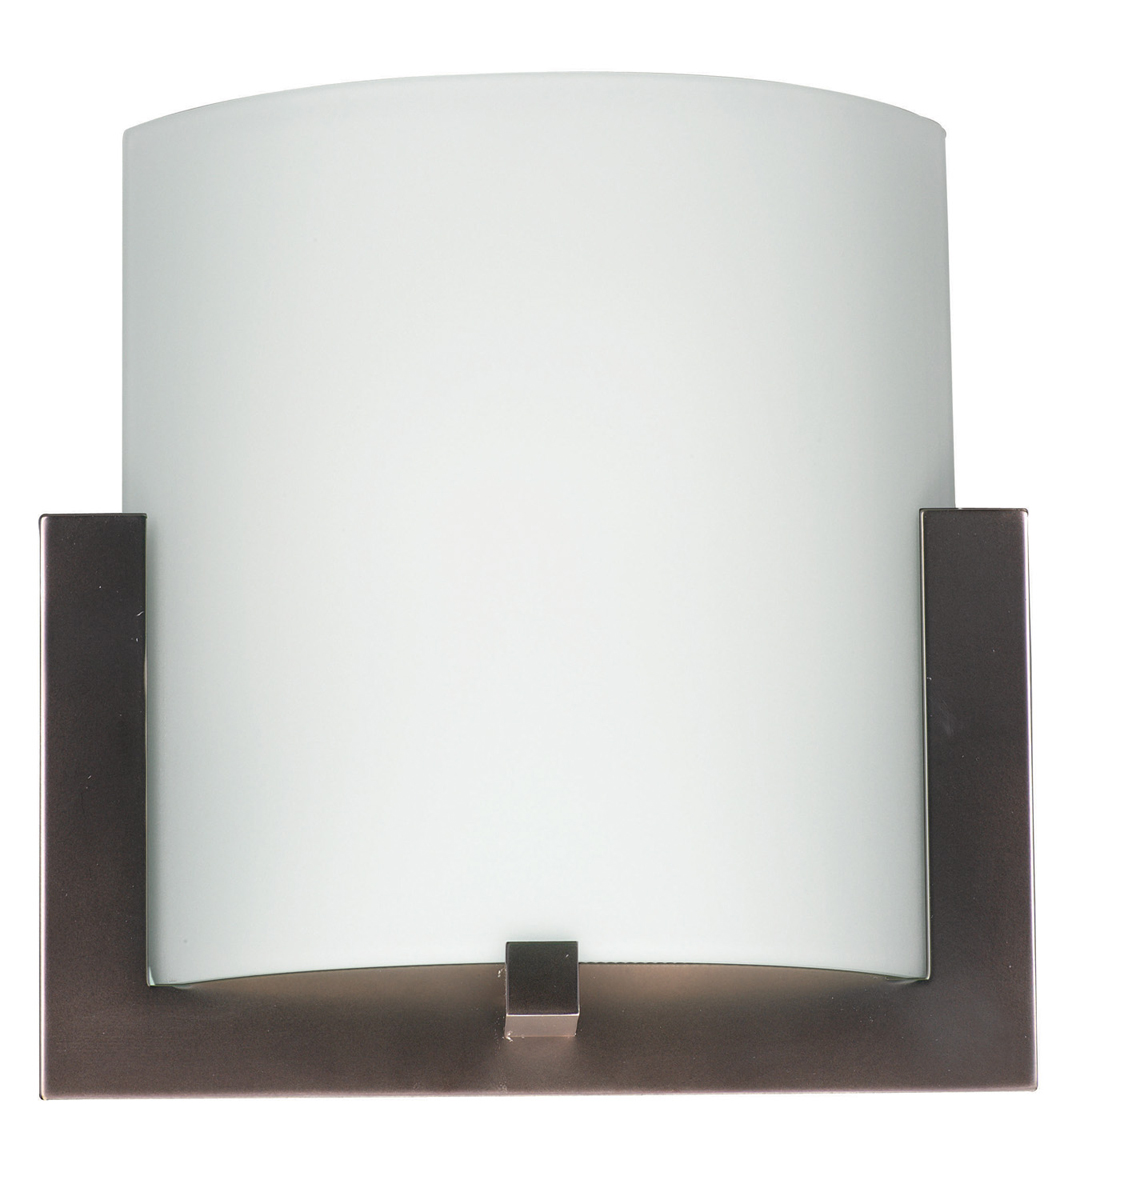 Philips Wall Lights Catalogue : Philips Lighting (FL0001870) Bow Wall Lamp in Merlot Bronze